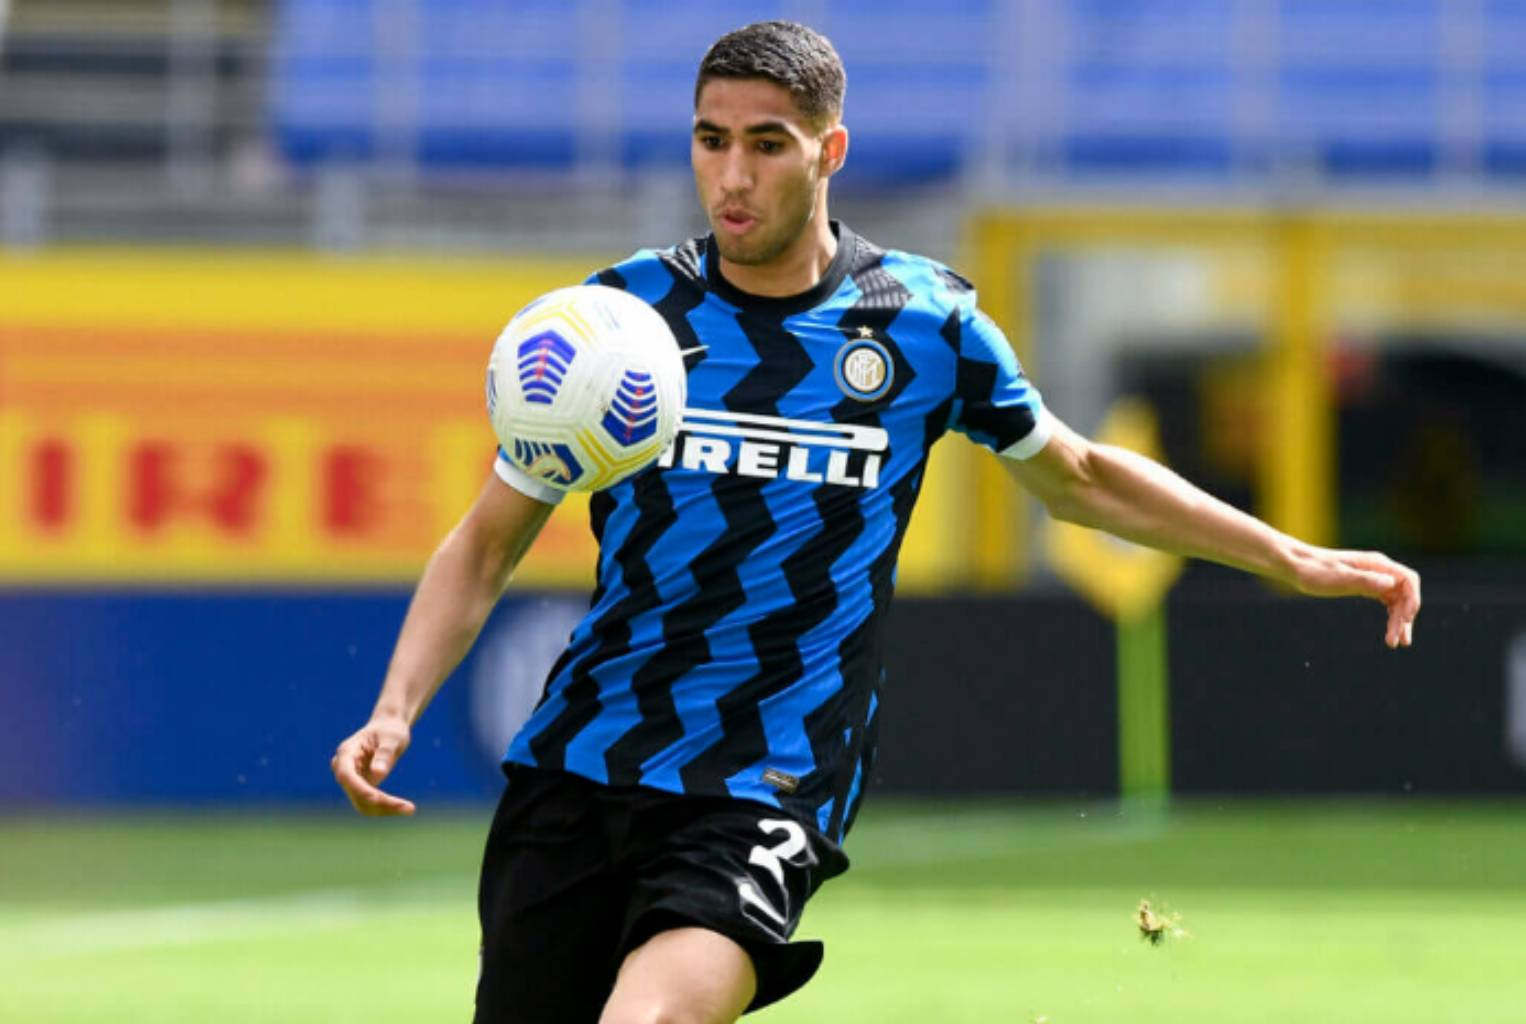 Psg face fierce competition from Chelsea for Inters Achraf Hakimi